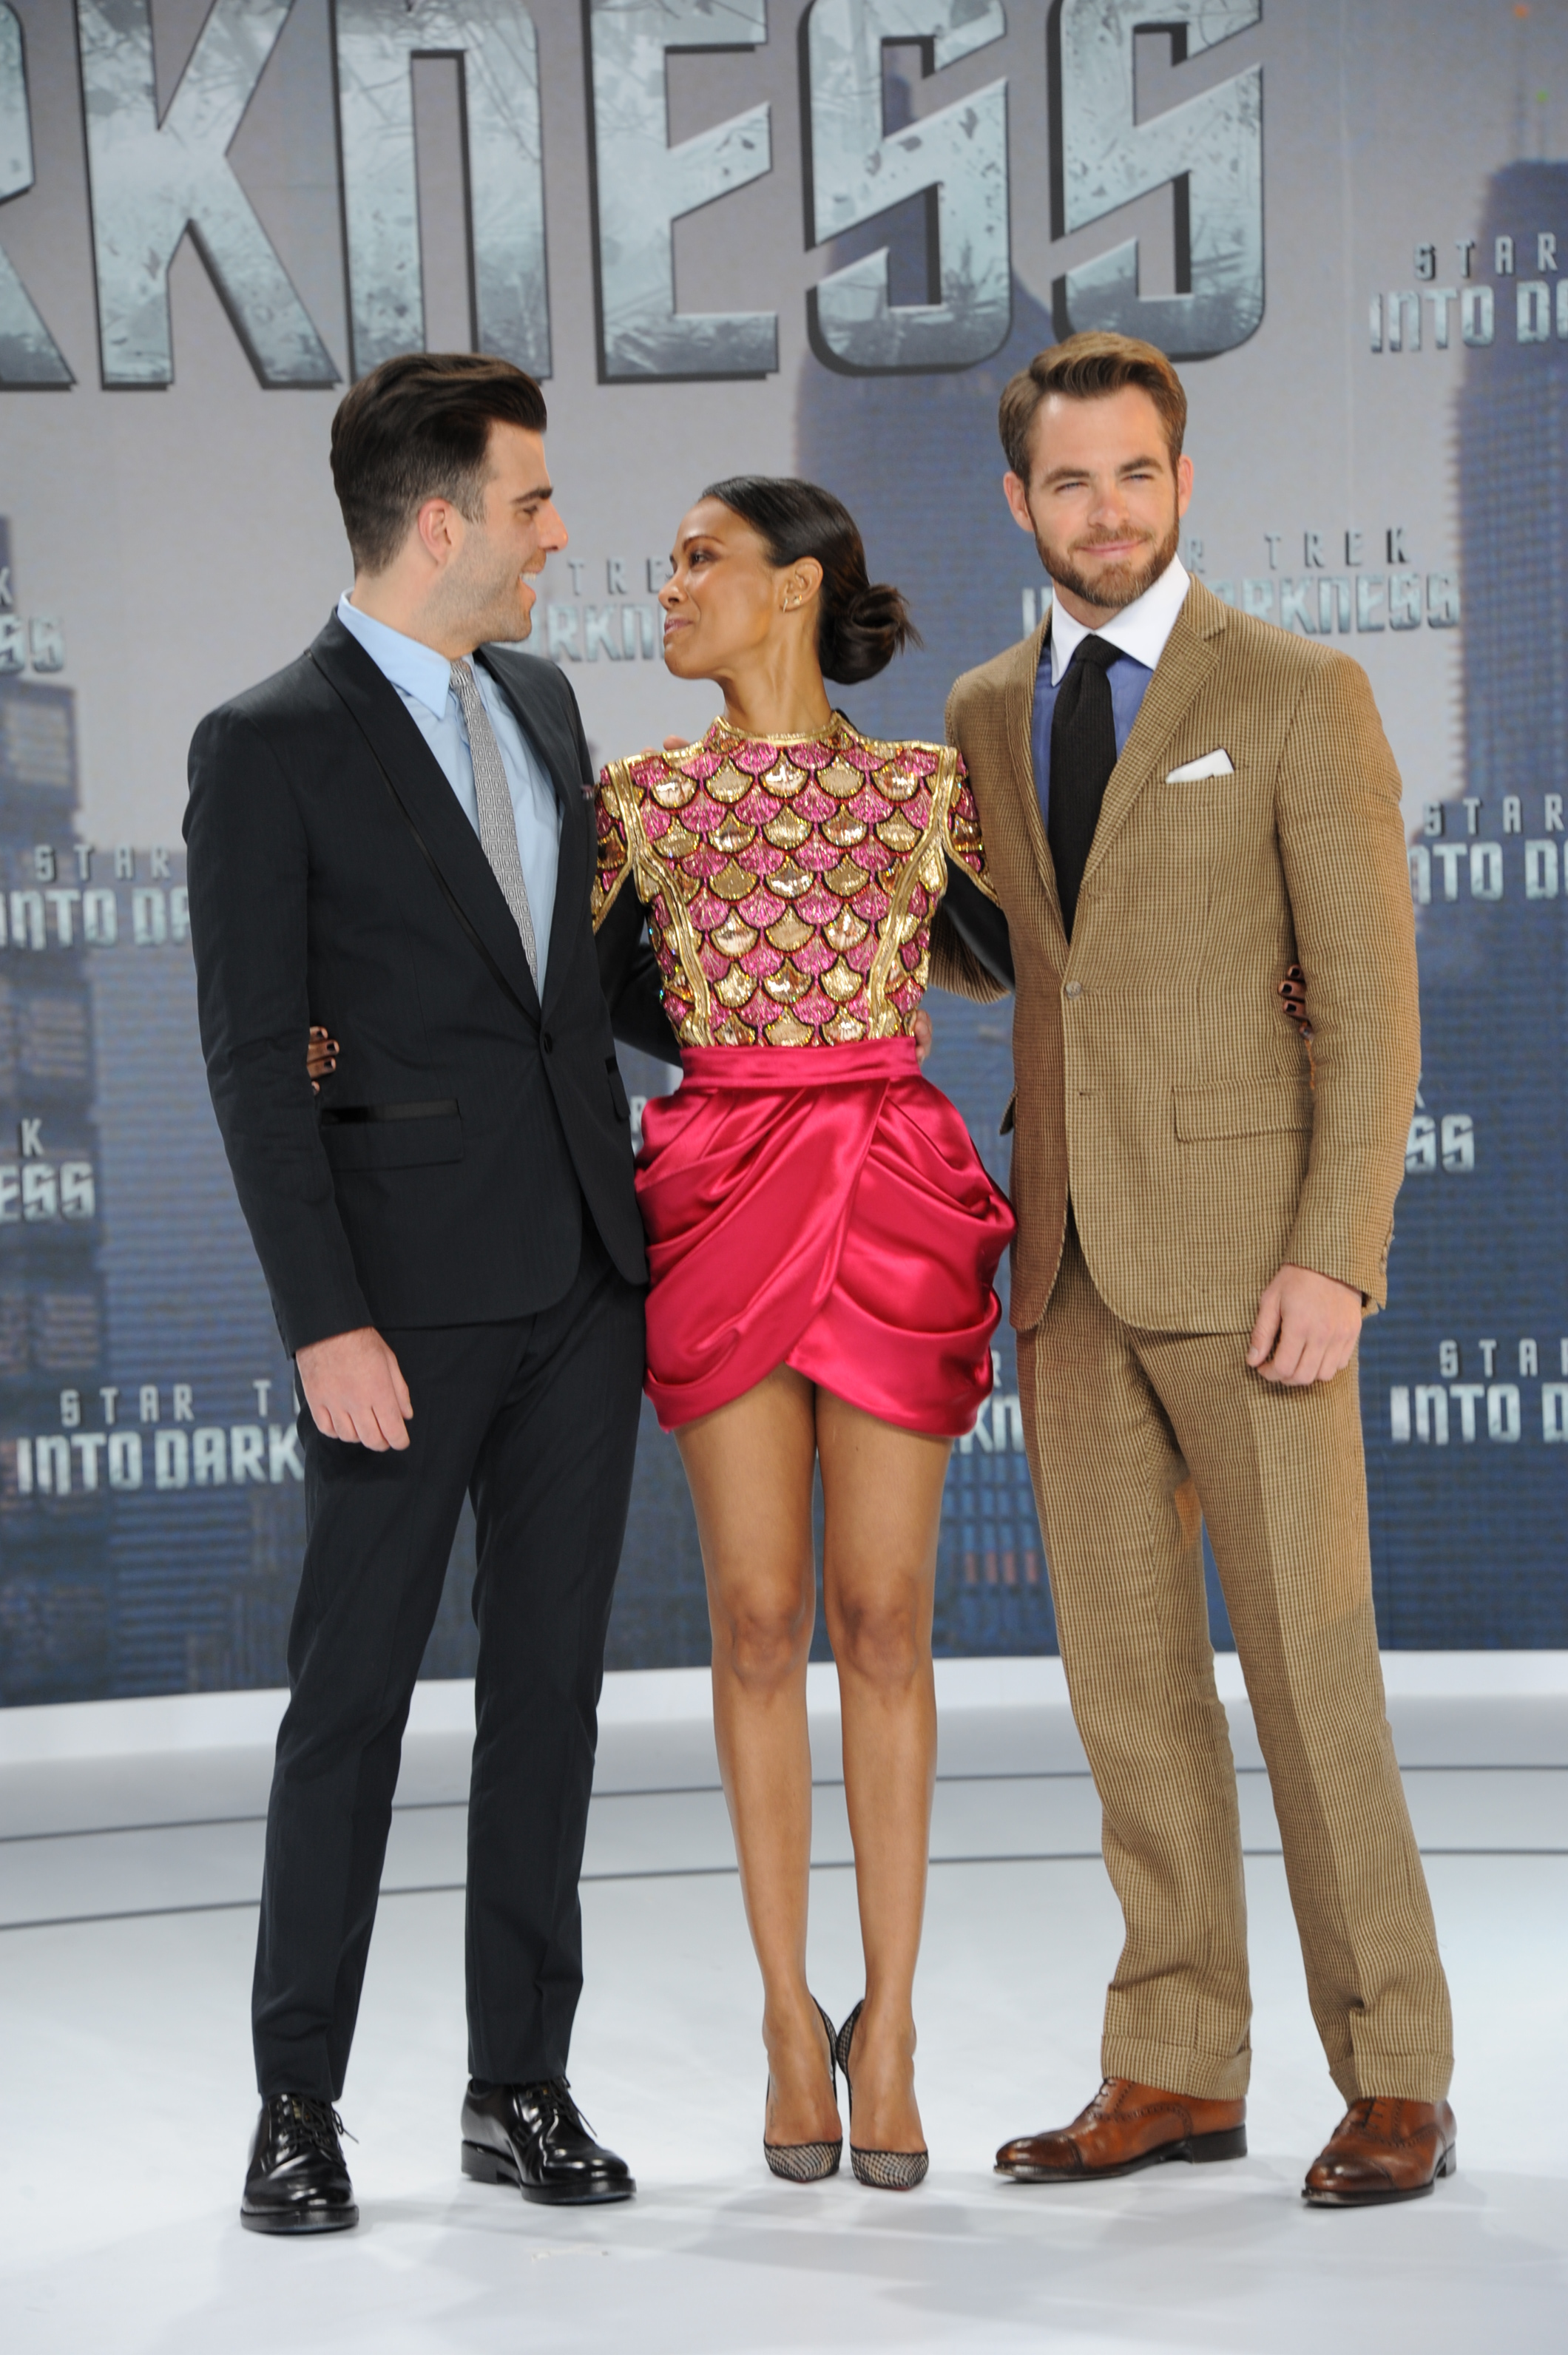 Zachary Quinto and Zoe Saldana shared a moment while posing with Chris Pine at the Star Trek Into the Darkness German premiere.